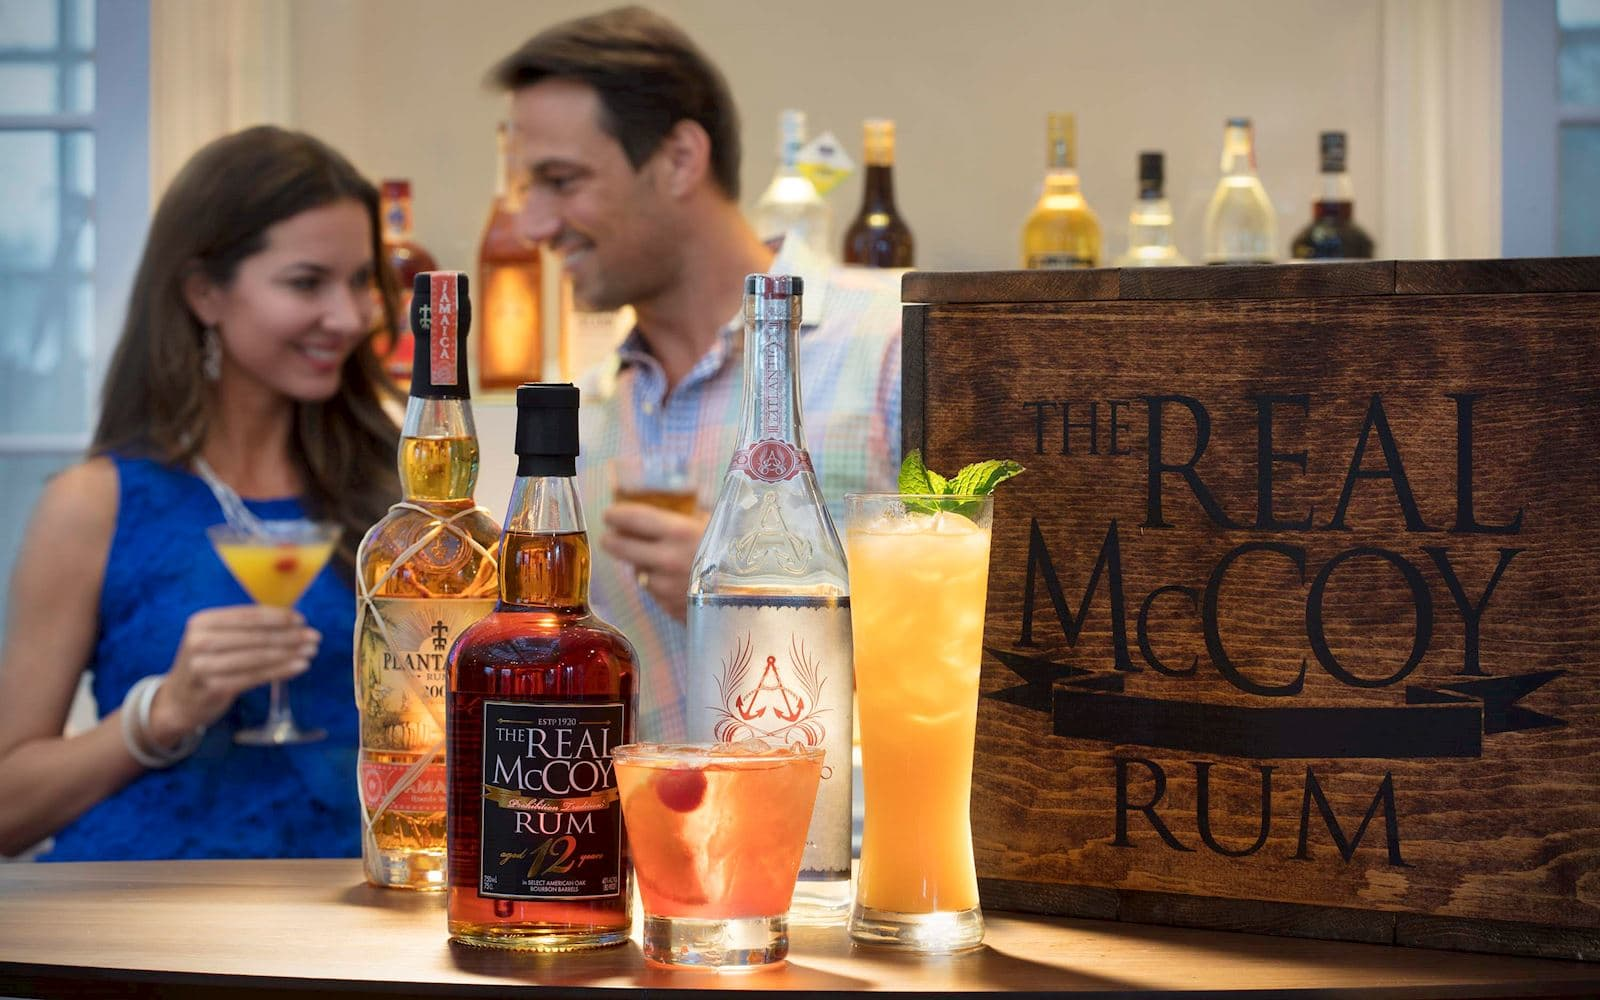 McCoys Rum Room at Hilton Daytona Beach Oceanfront Resort